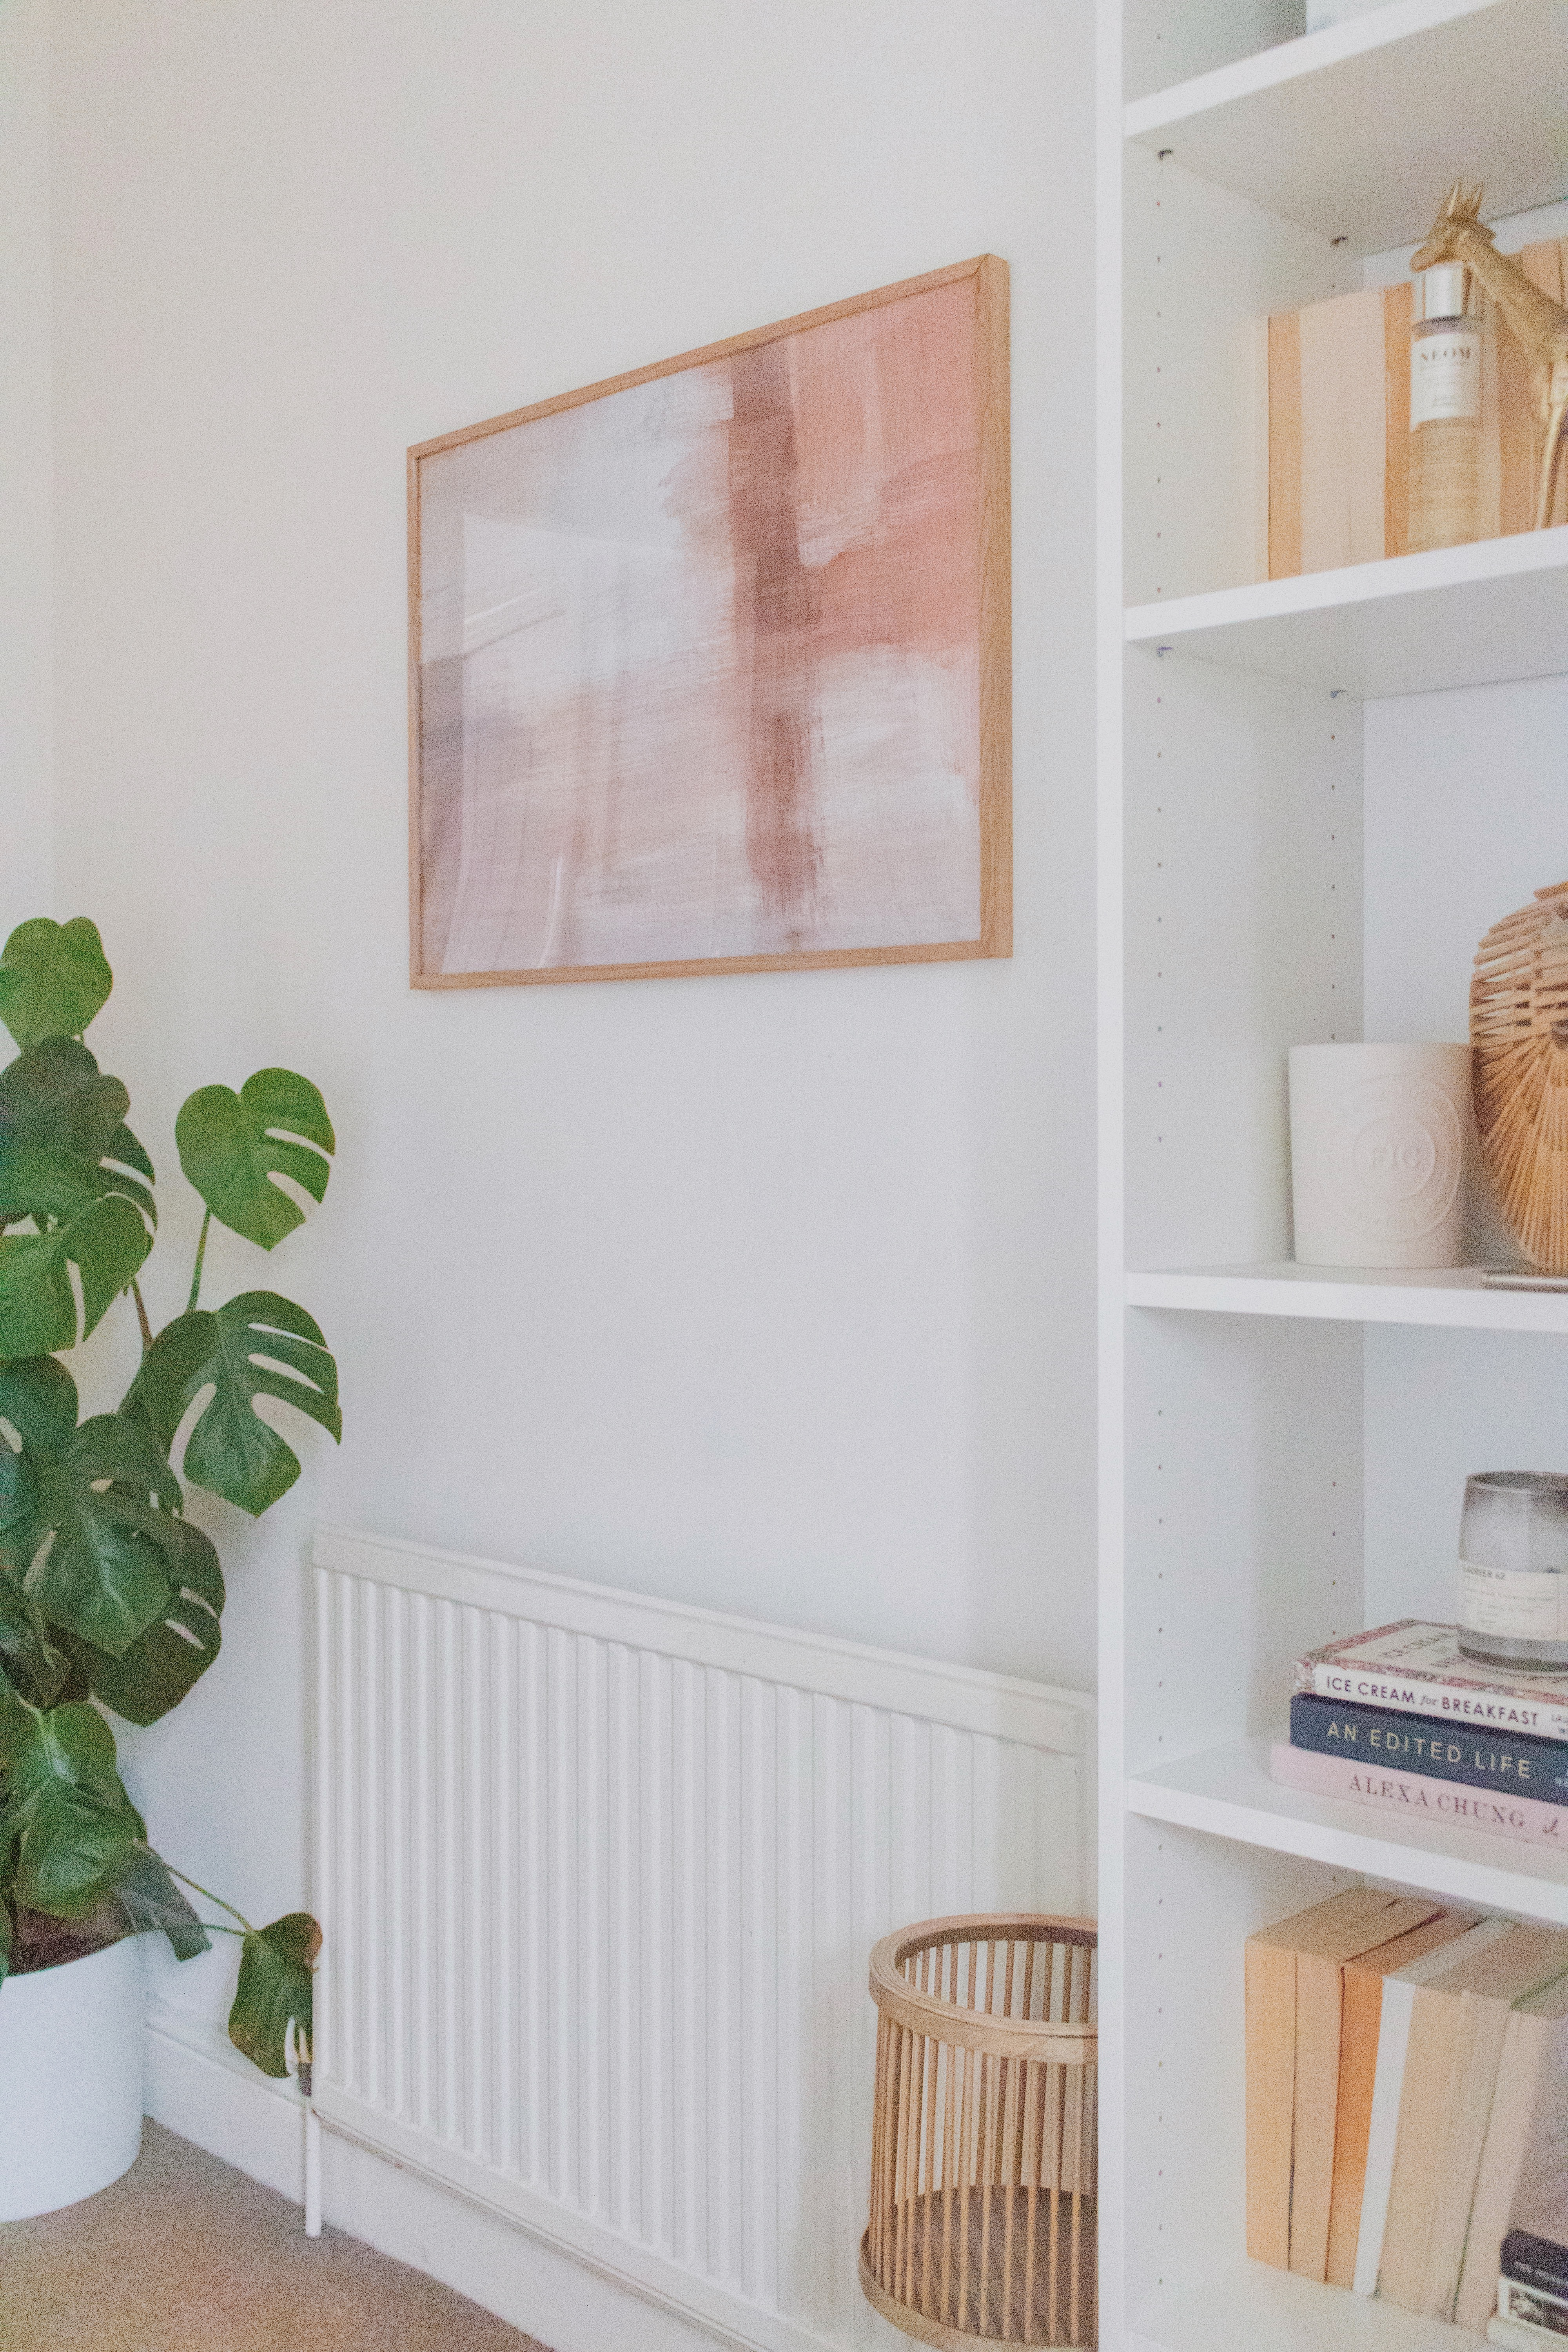 an edited lifestyle interiors colour into a neutral home